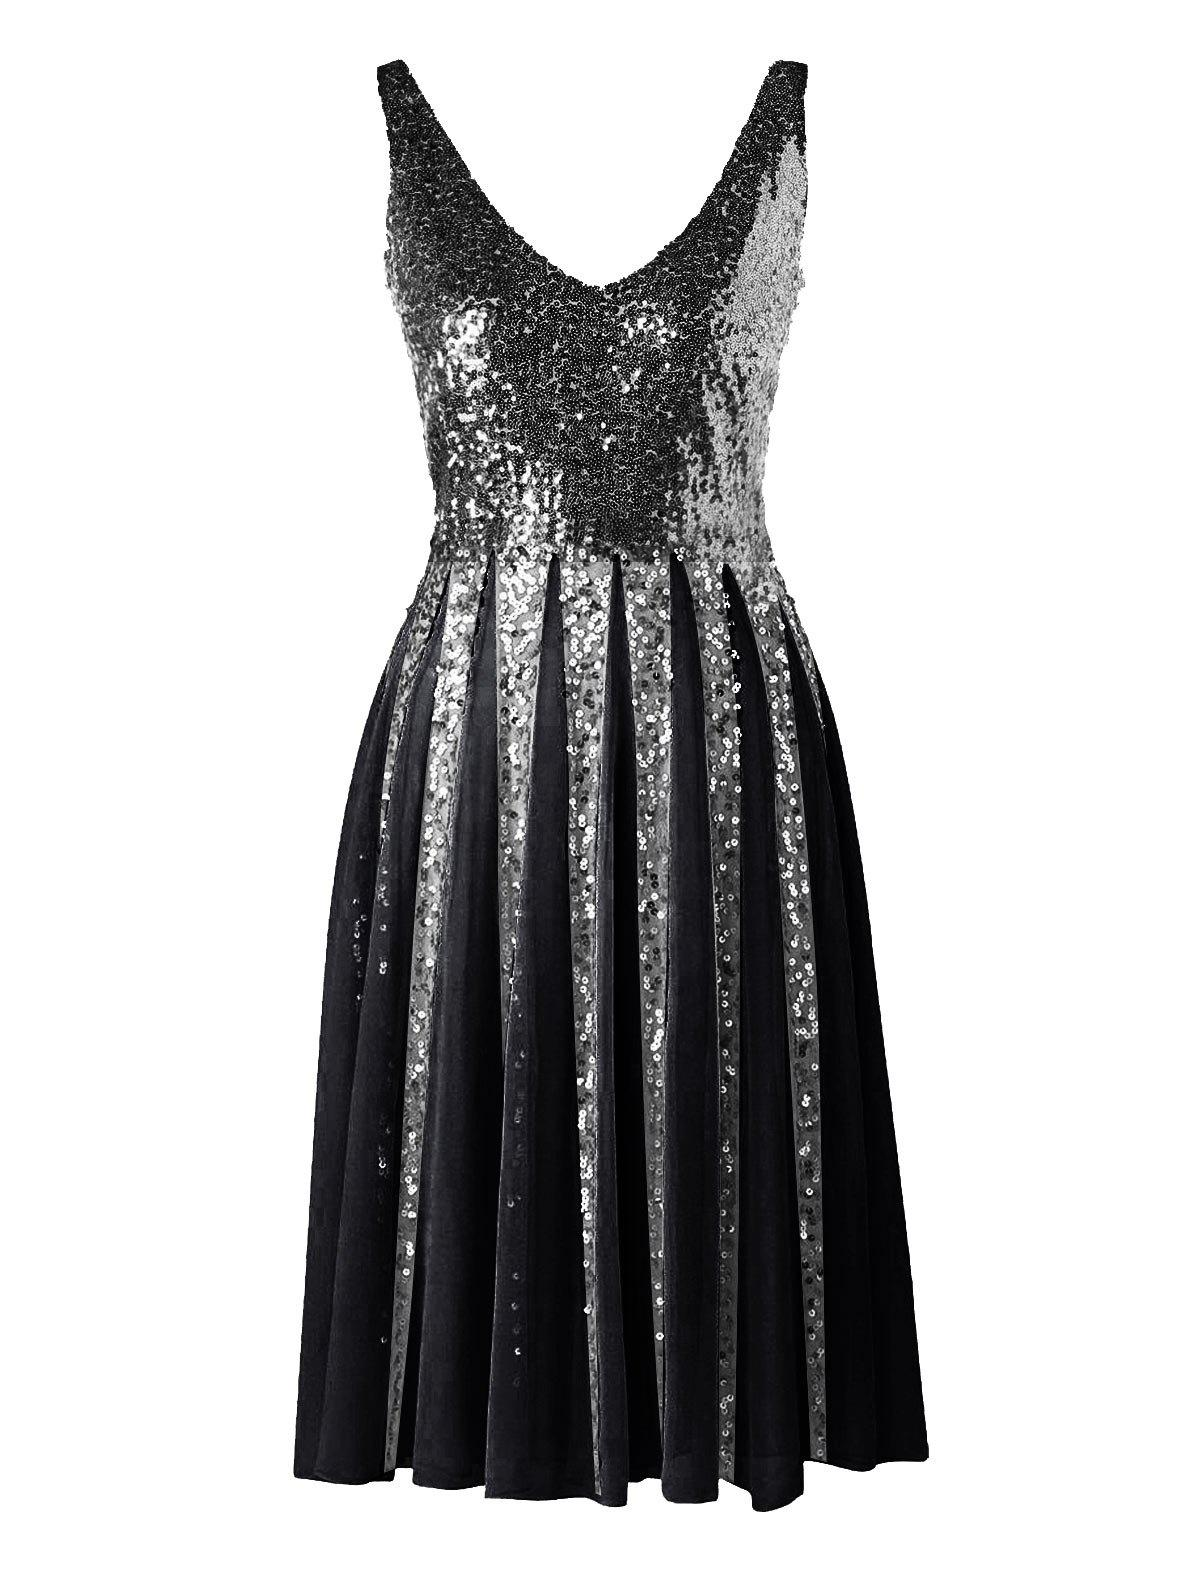 Sequined Sleeveless Chiffon Dress - BLACK 2XL